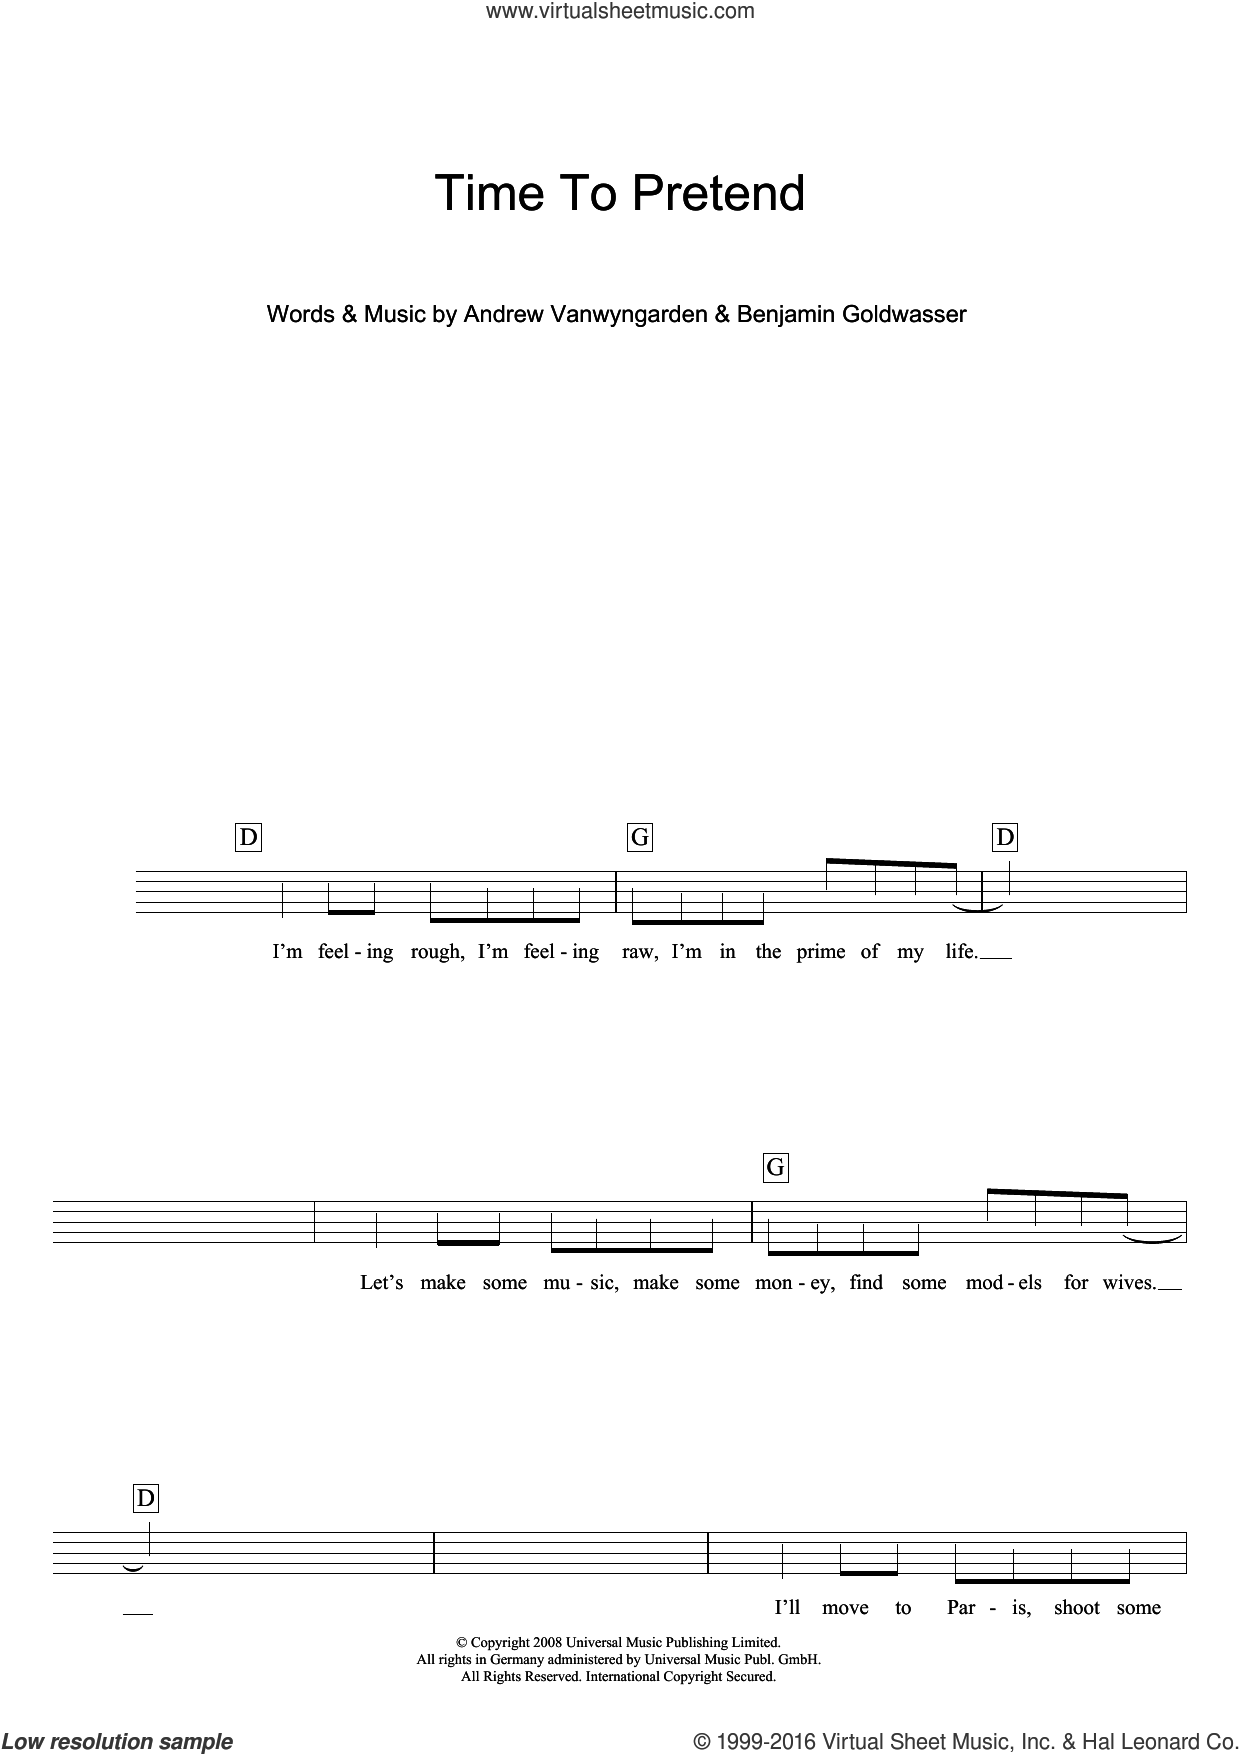 Time To Pretend sheet music for voice and other instruments (fake book) by MGMT, Andrew Vanwyngarden and Benjamin Goldwasser, intermediate skill level